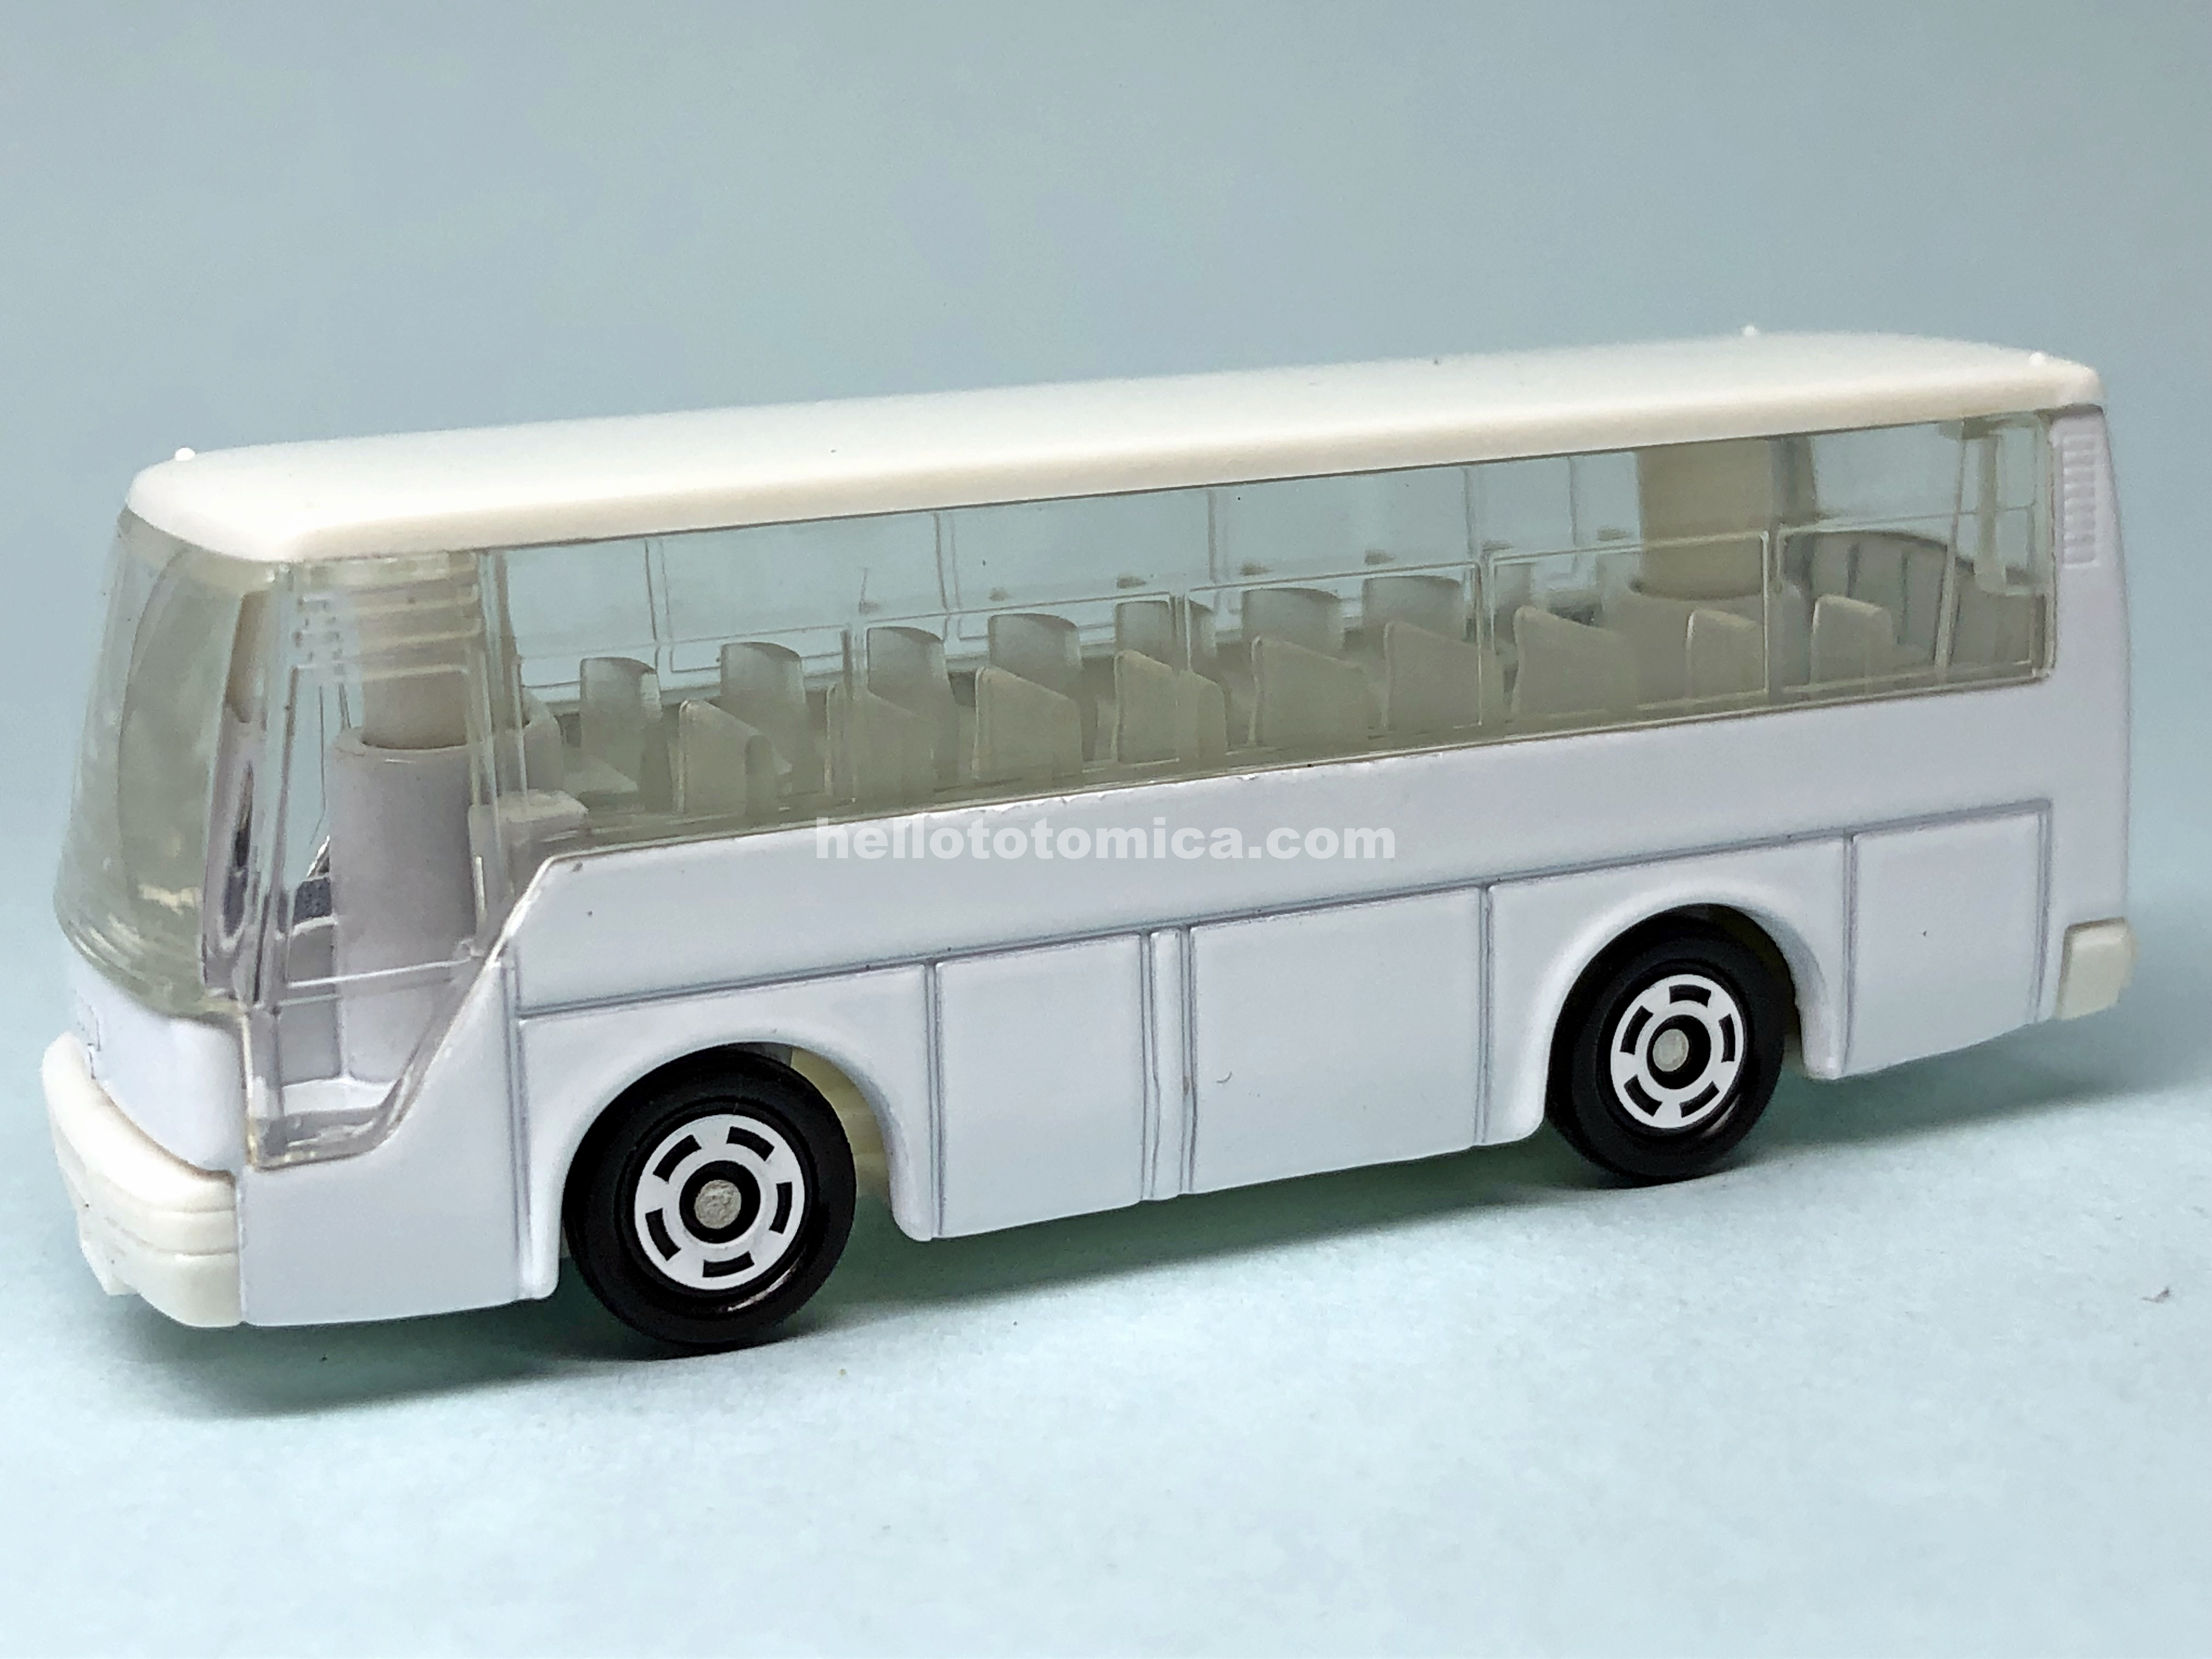 41-4 ISUZU SUPER HI-DECKERBUS